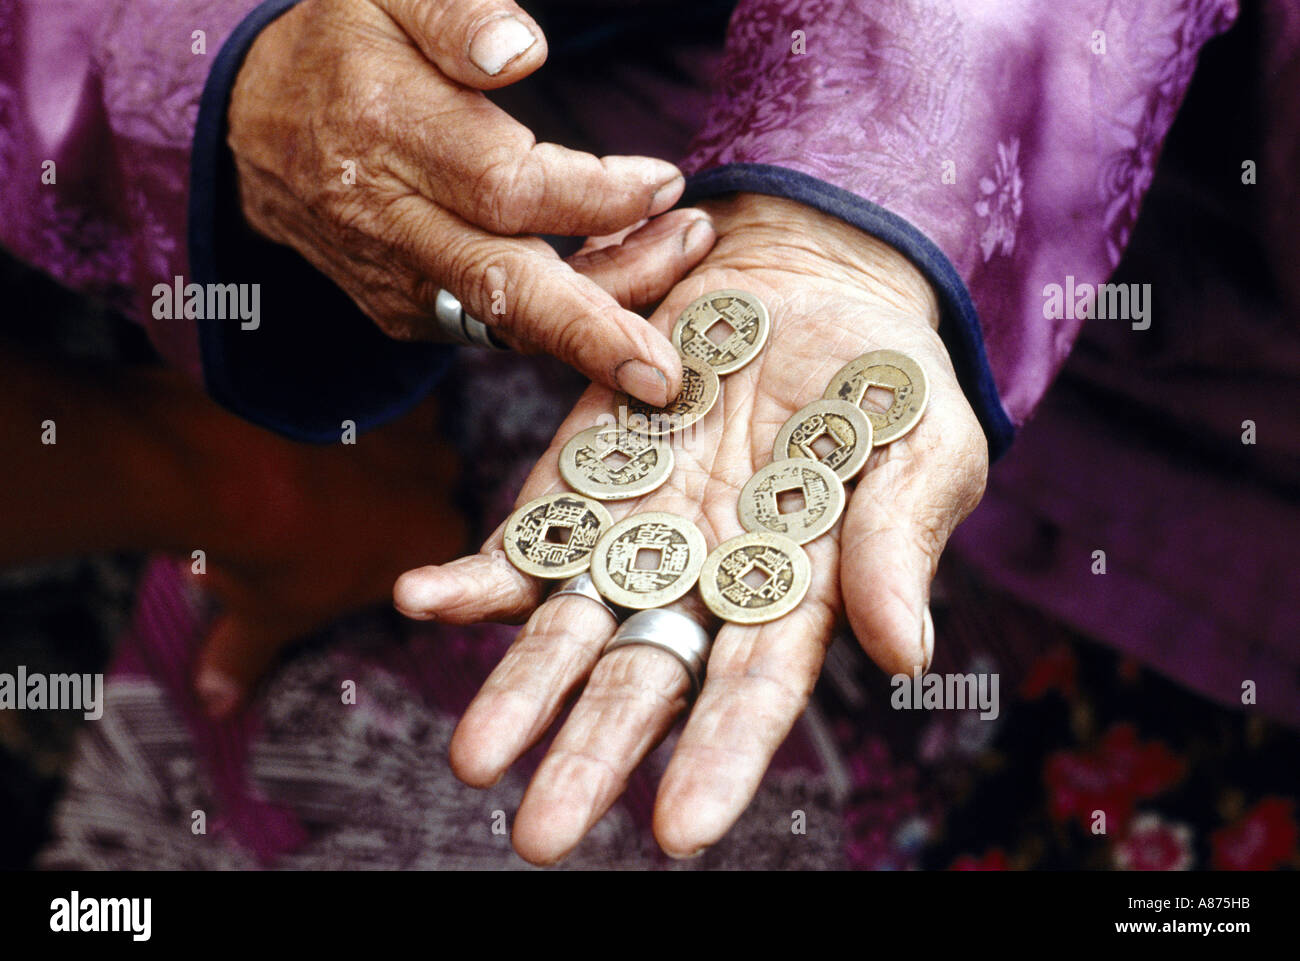 Mongolia a fortune teller in the Khoevsgoel province - Stock Image